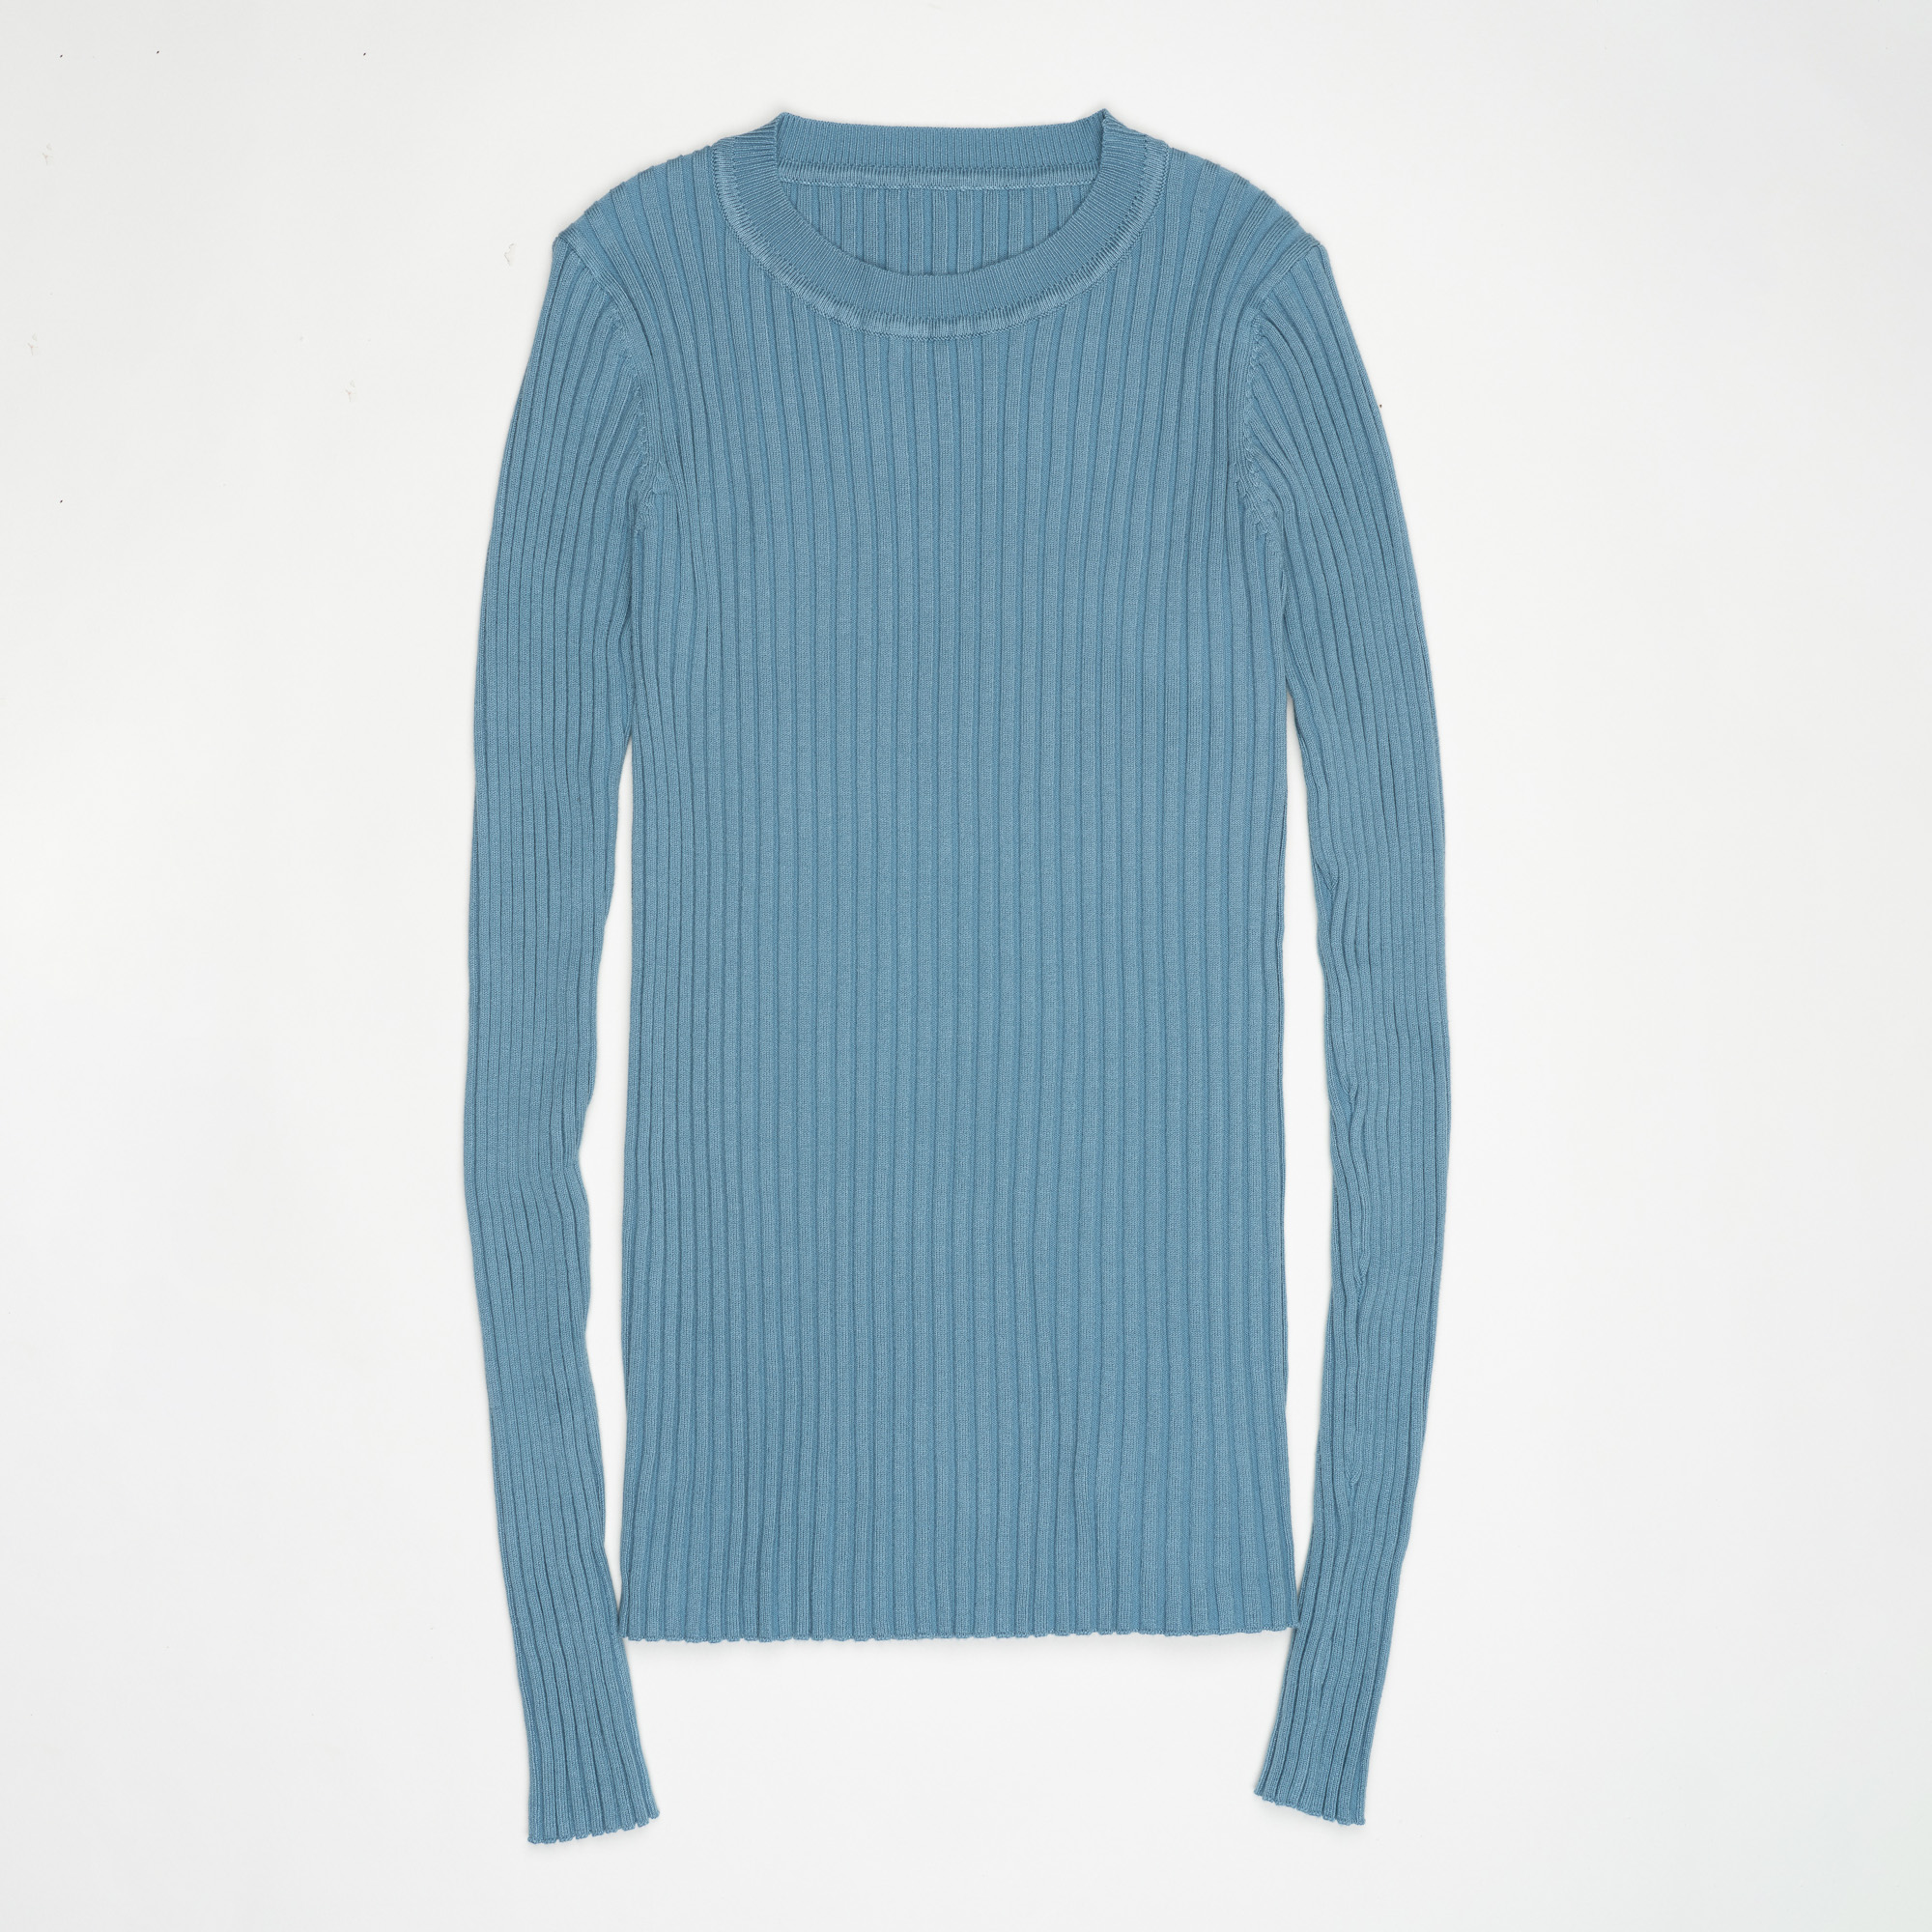 Women Sweater Pullover Basic Ribbed Sweaters Cotton Tops Knitted Solid Crew Neck With Thumb Hole 19